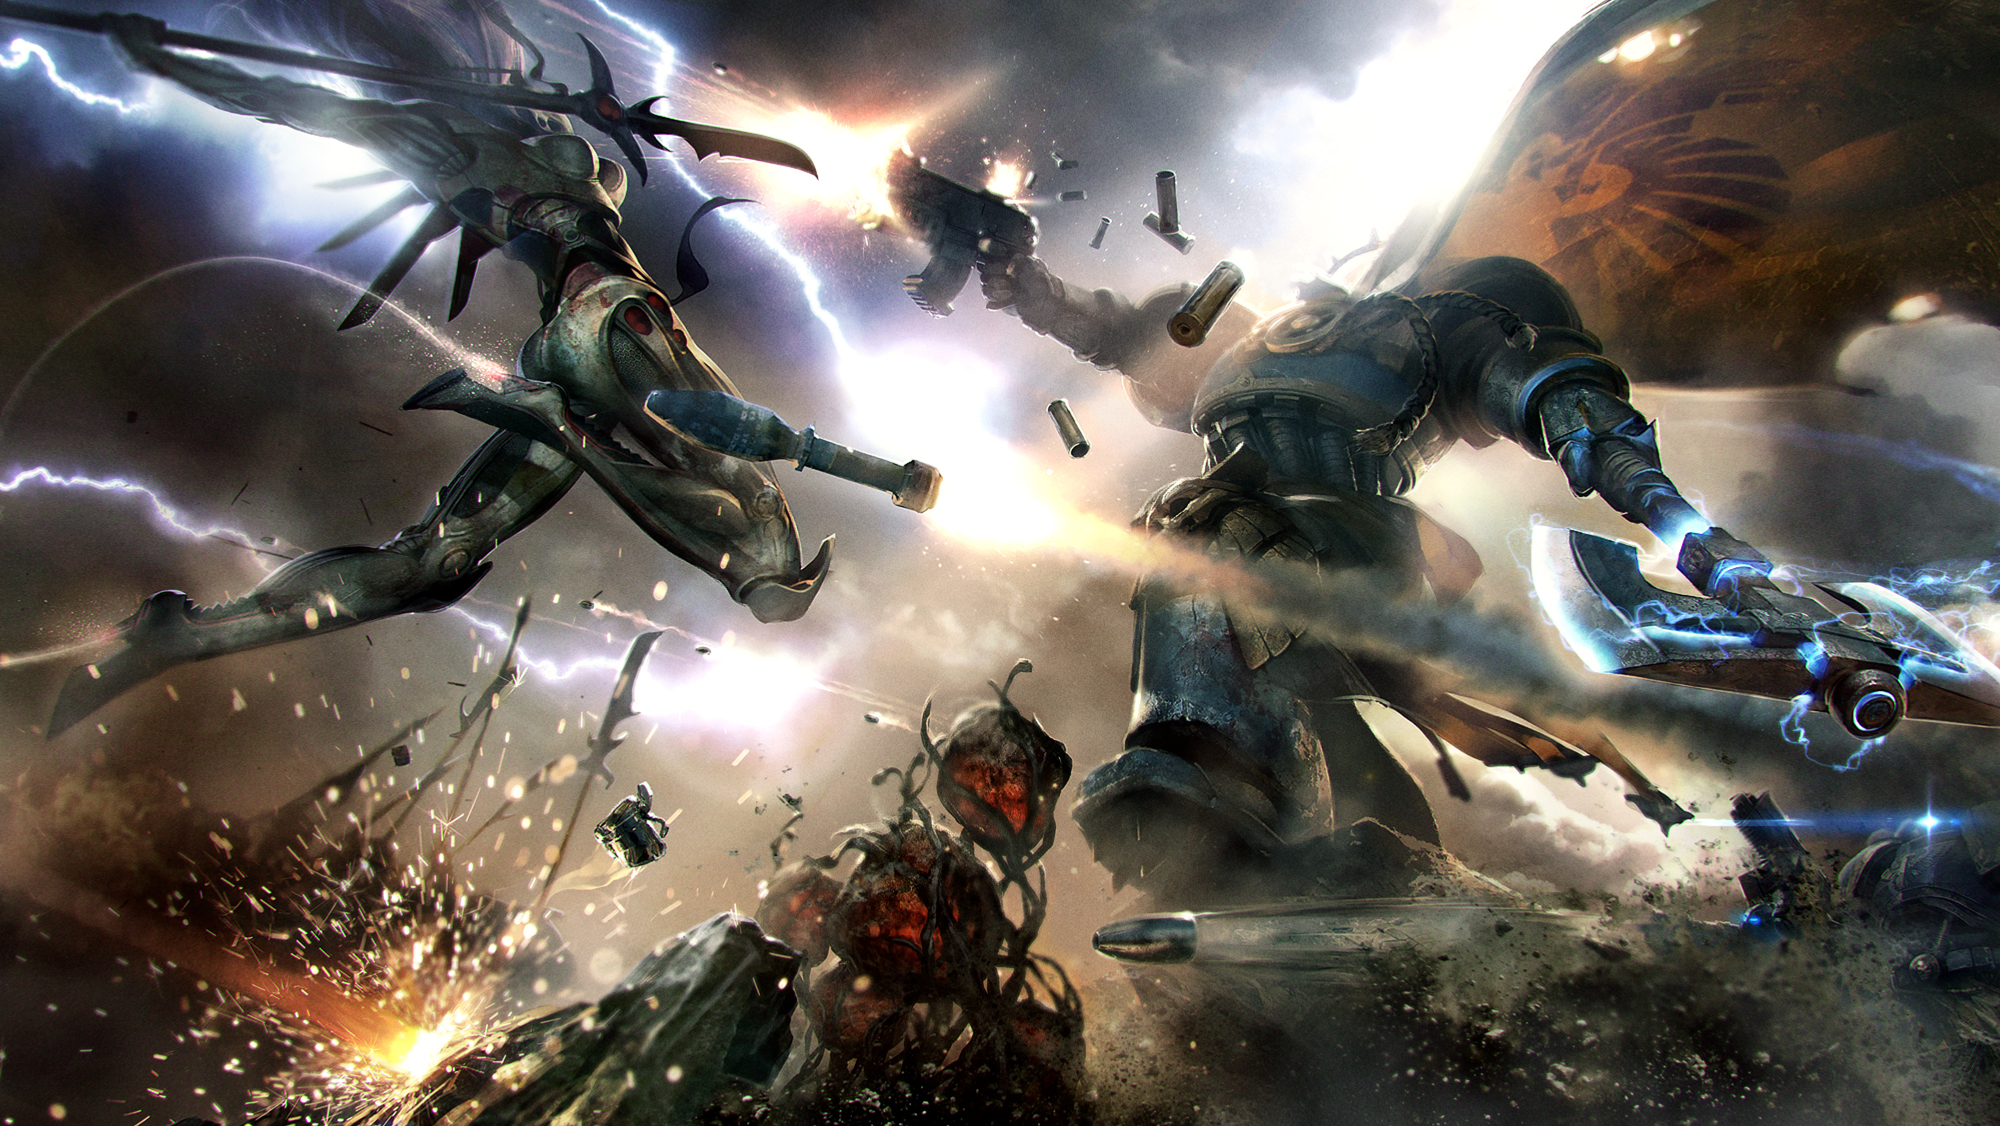 warhammer 40k wallpapers, pictures, images